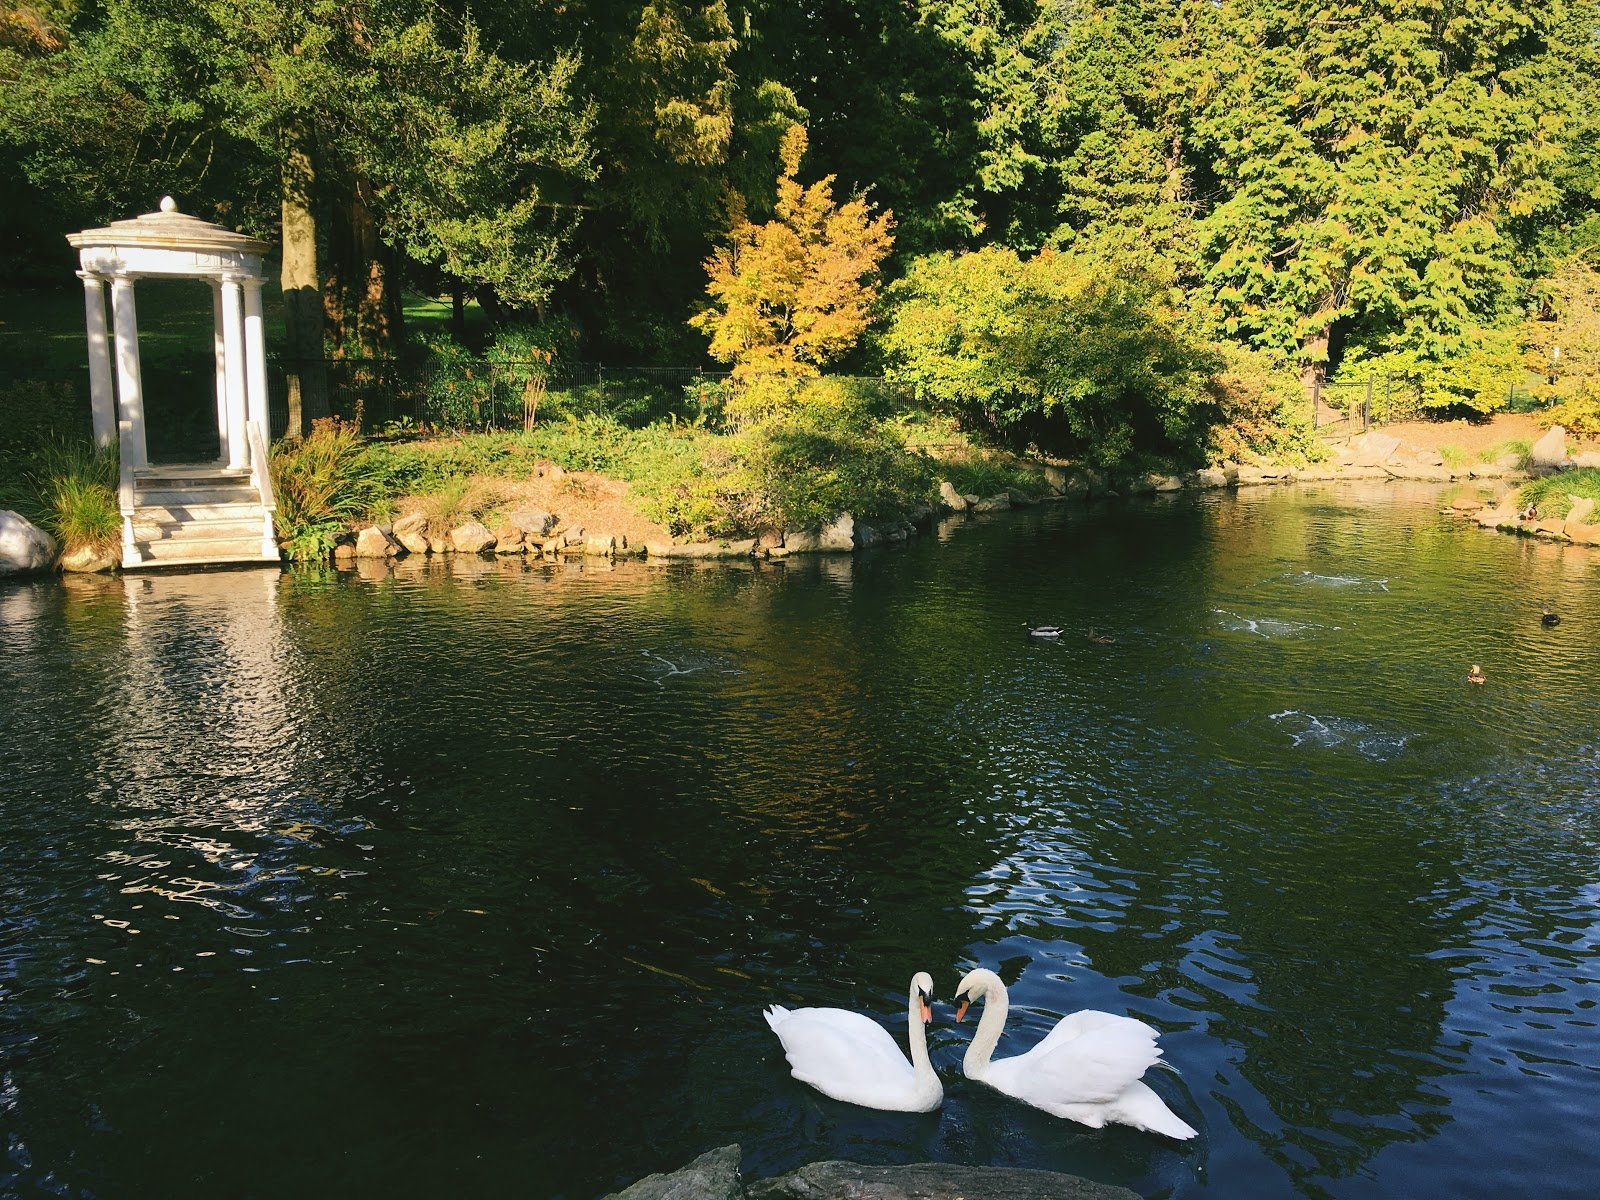 Two Swans in park lake